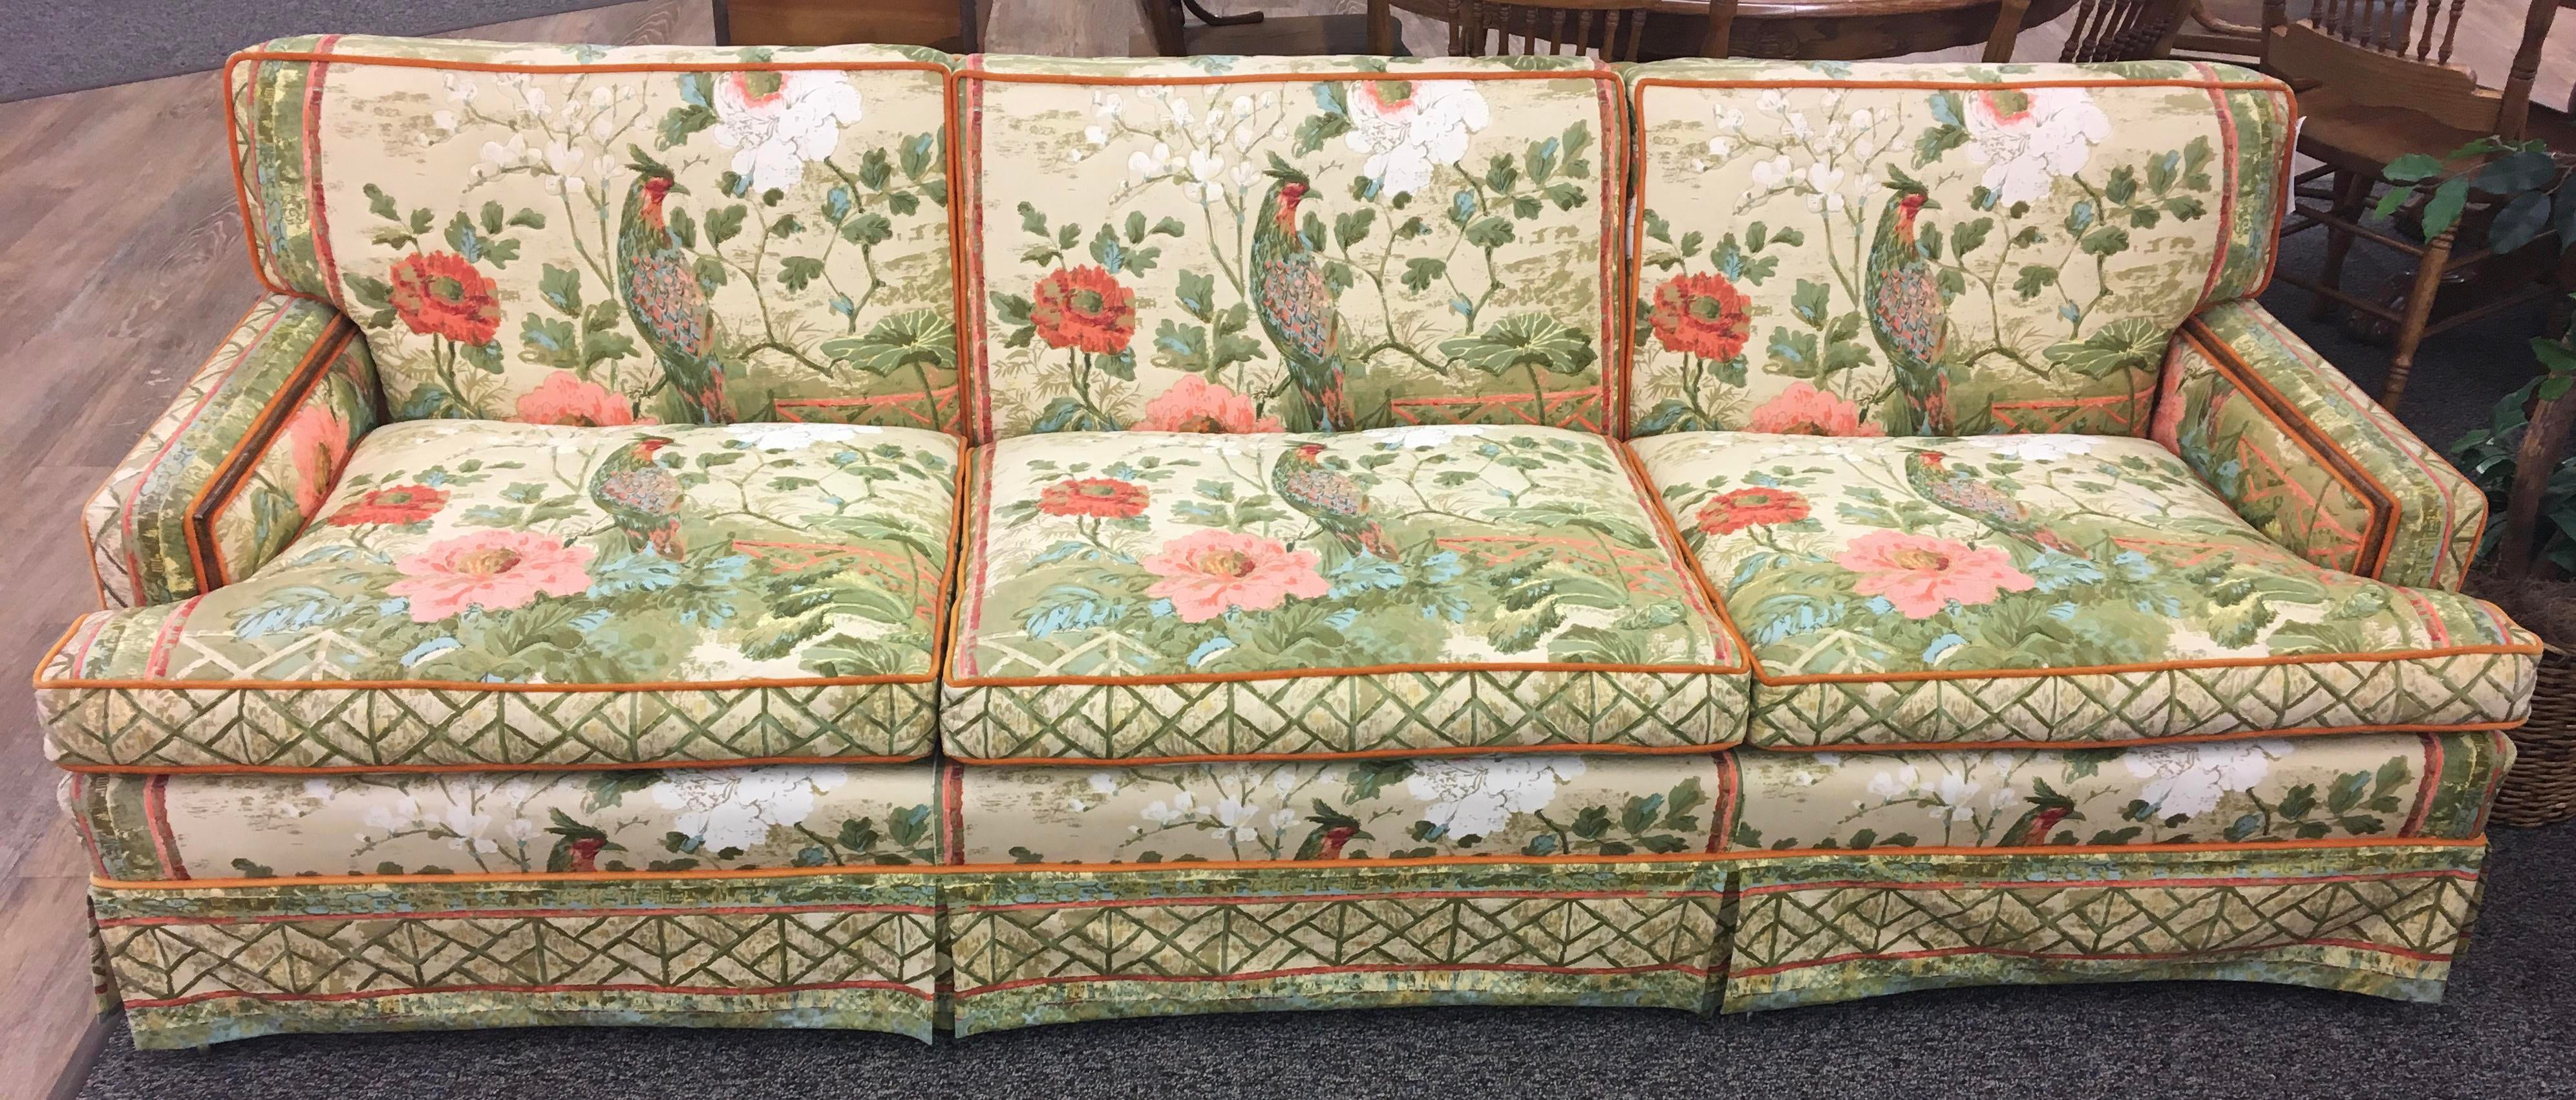 Turquoise Custom Hollywood Regency Peacock Fabric Vintage Sofa For Sale    Image 8 Of 8